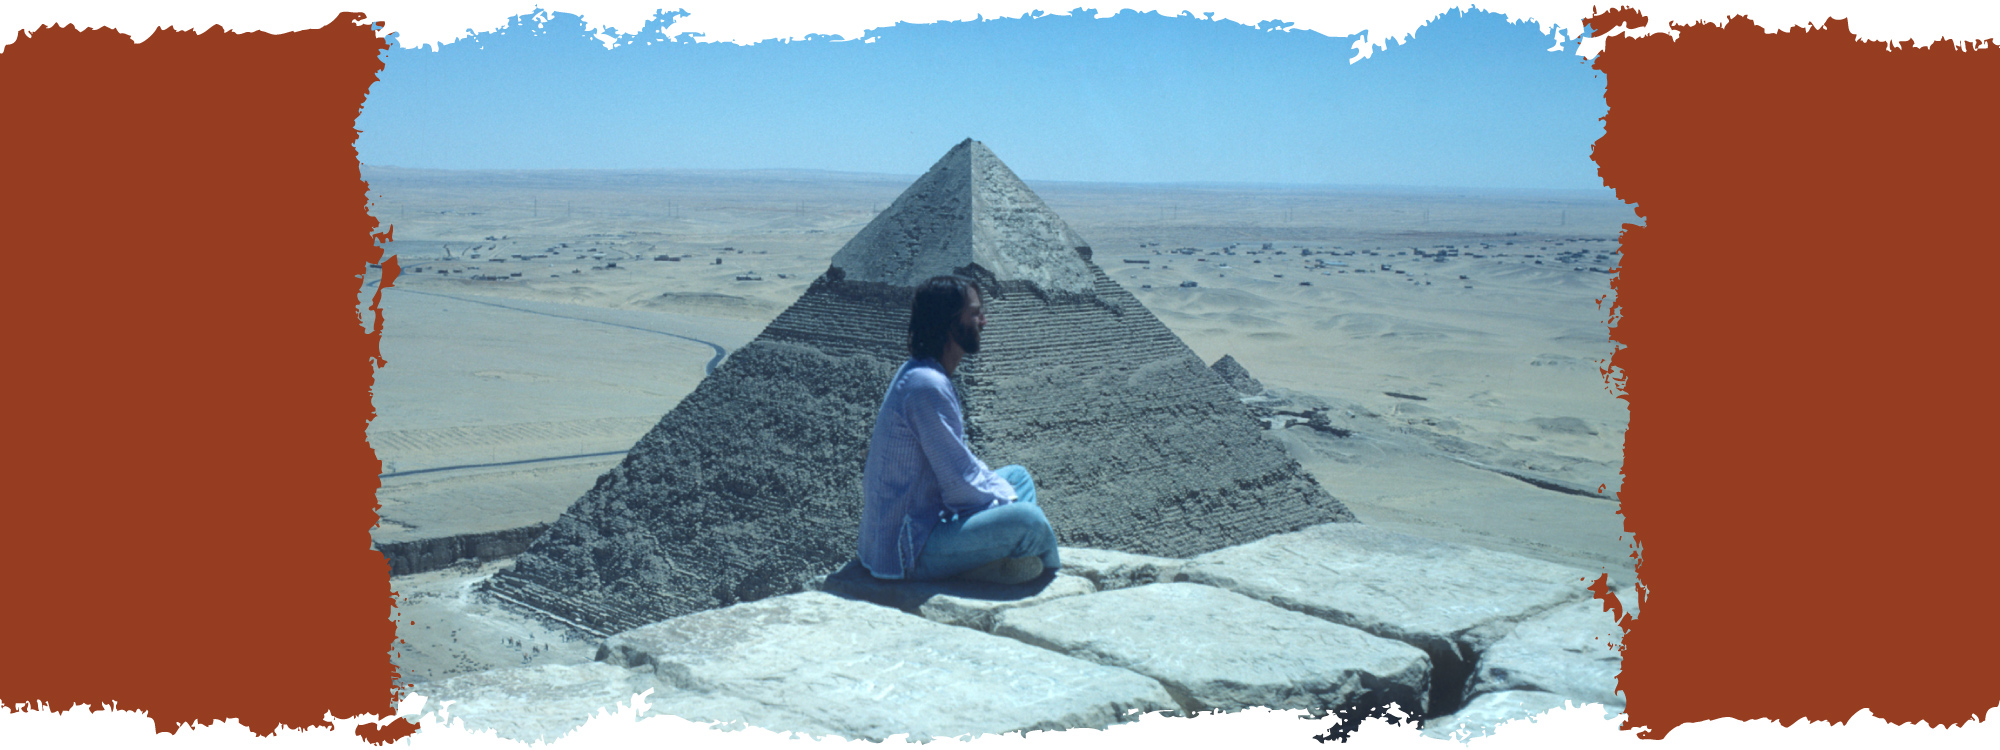 david-miln-smith-adventures-pyramid